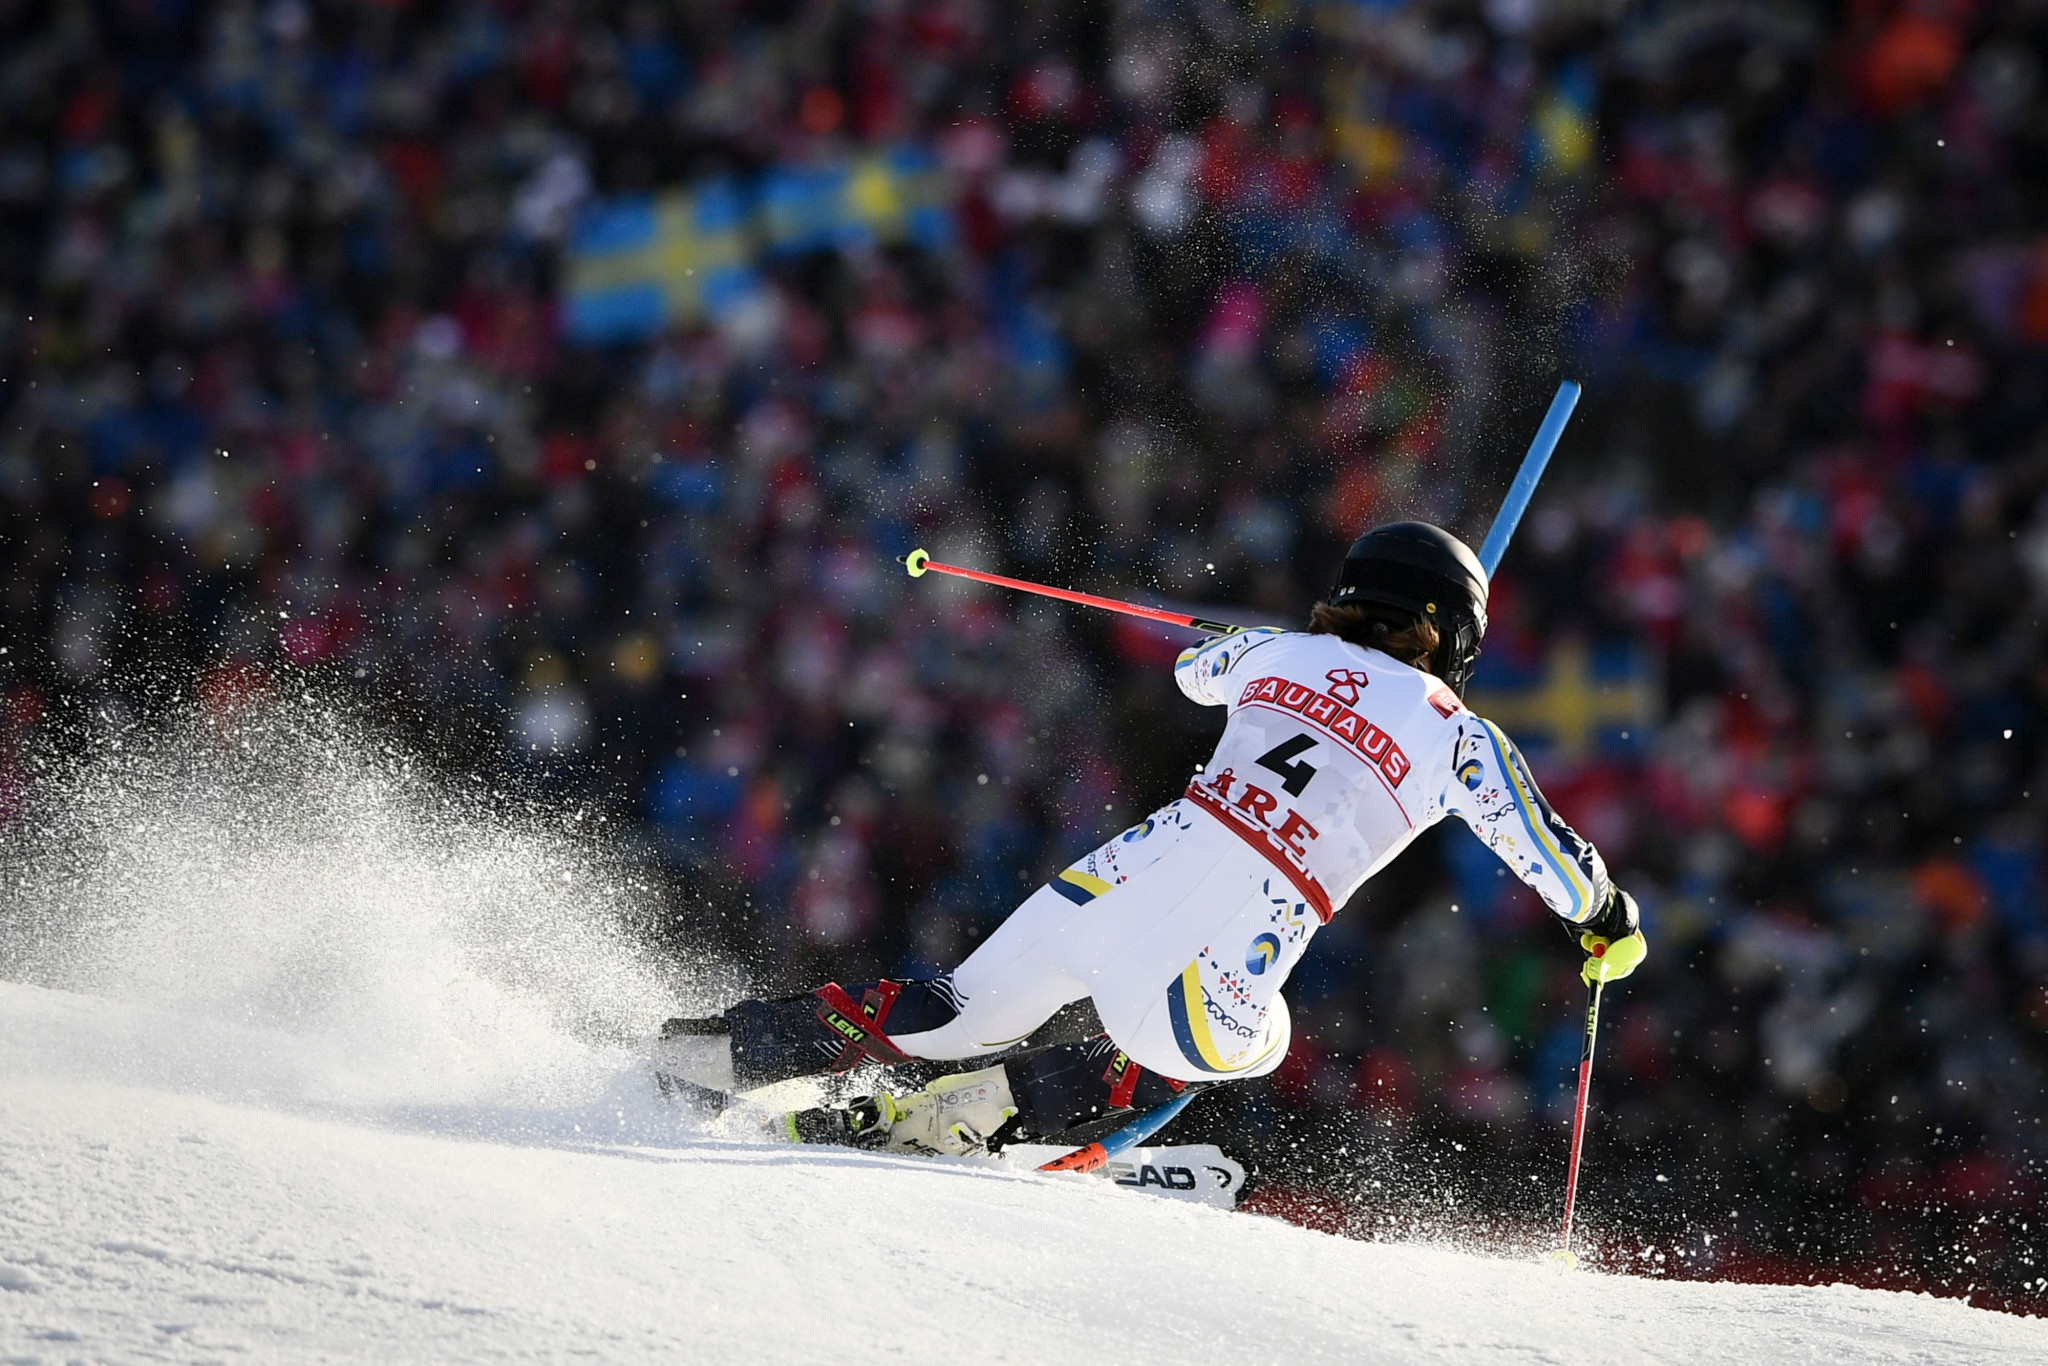 Sweden's Anna Swenn Larsson led the race at the halfway mark ©Getty Images